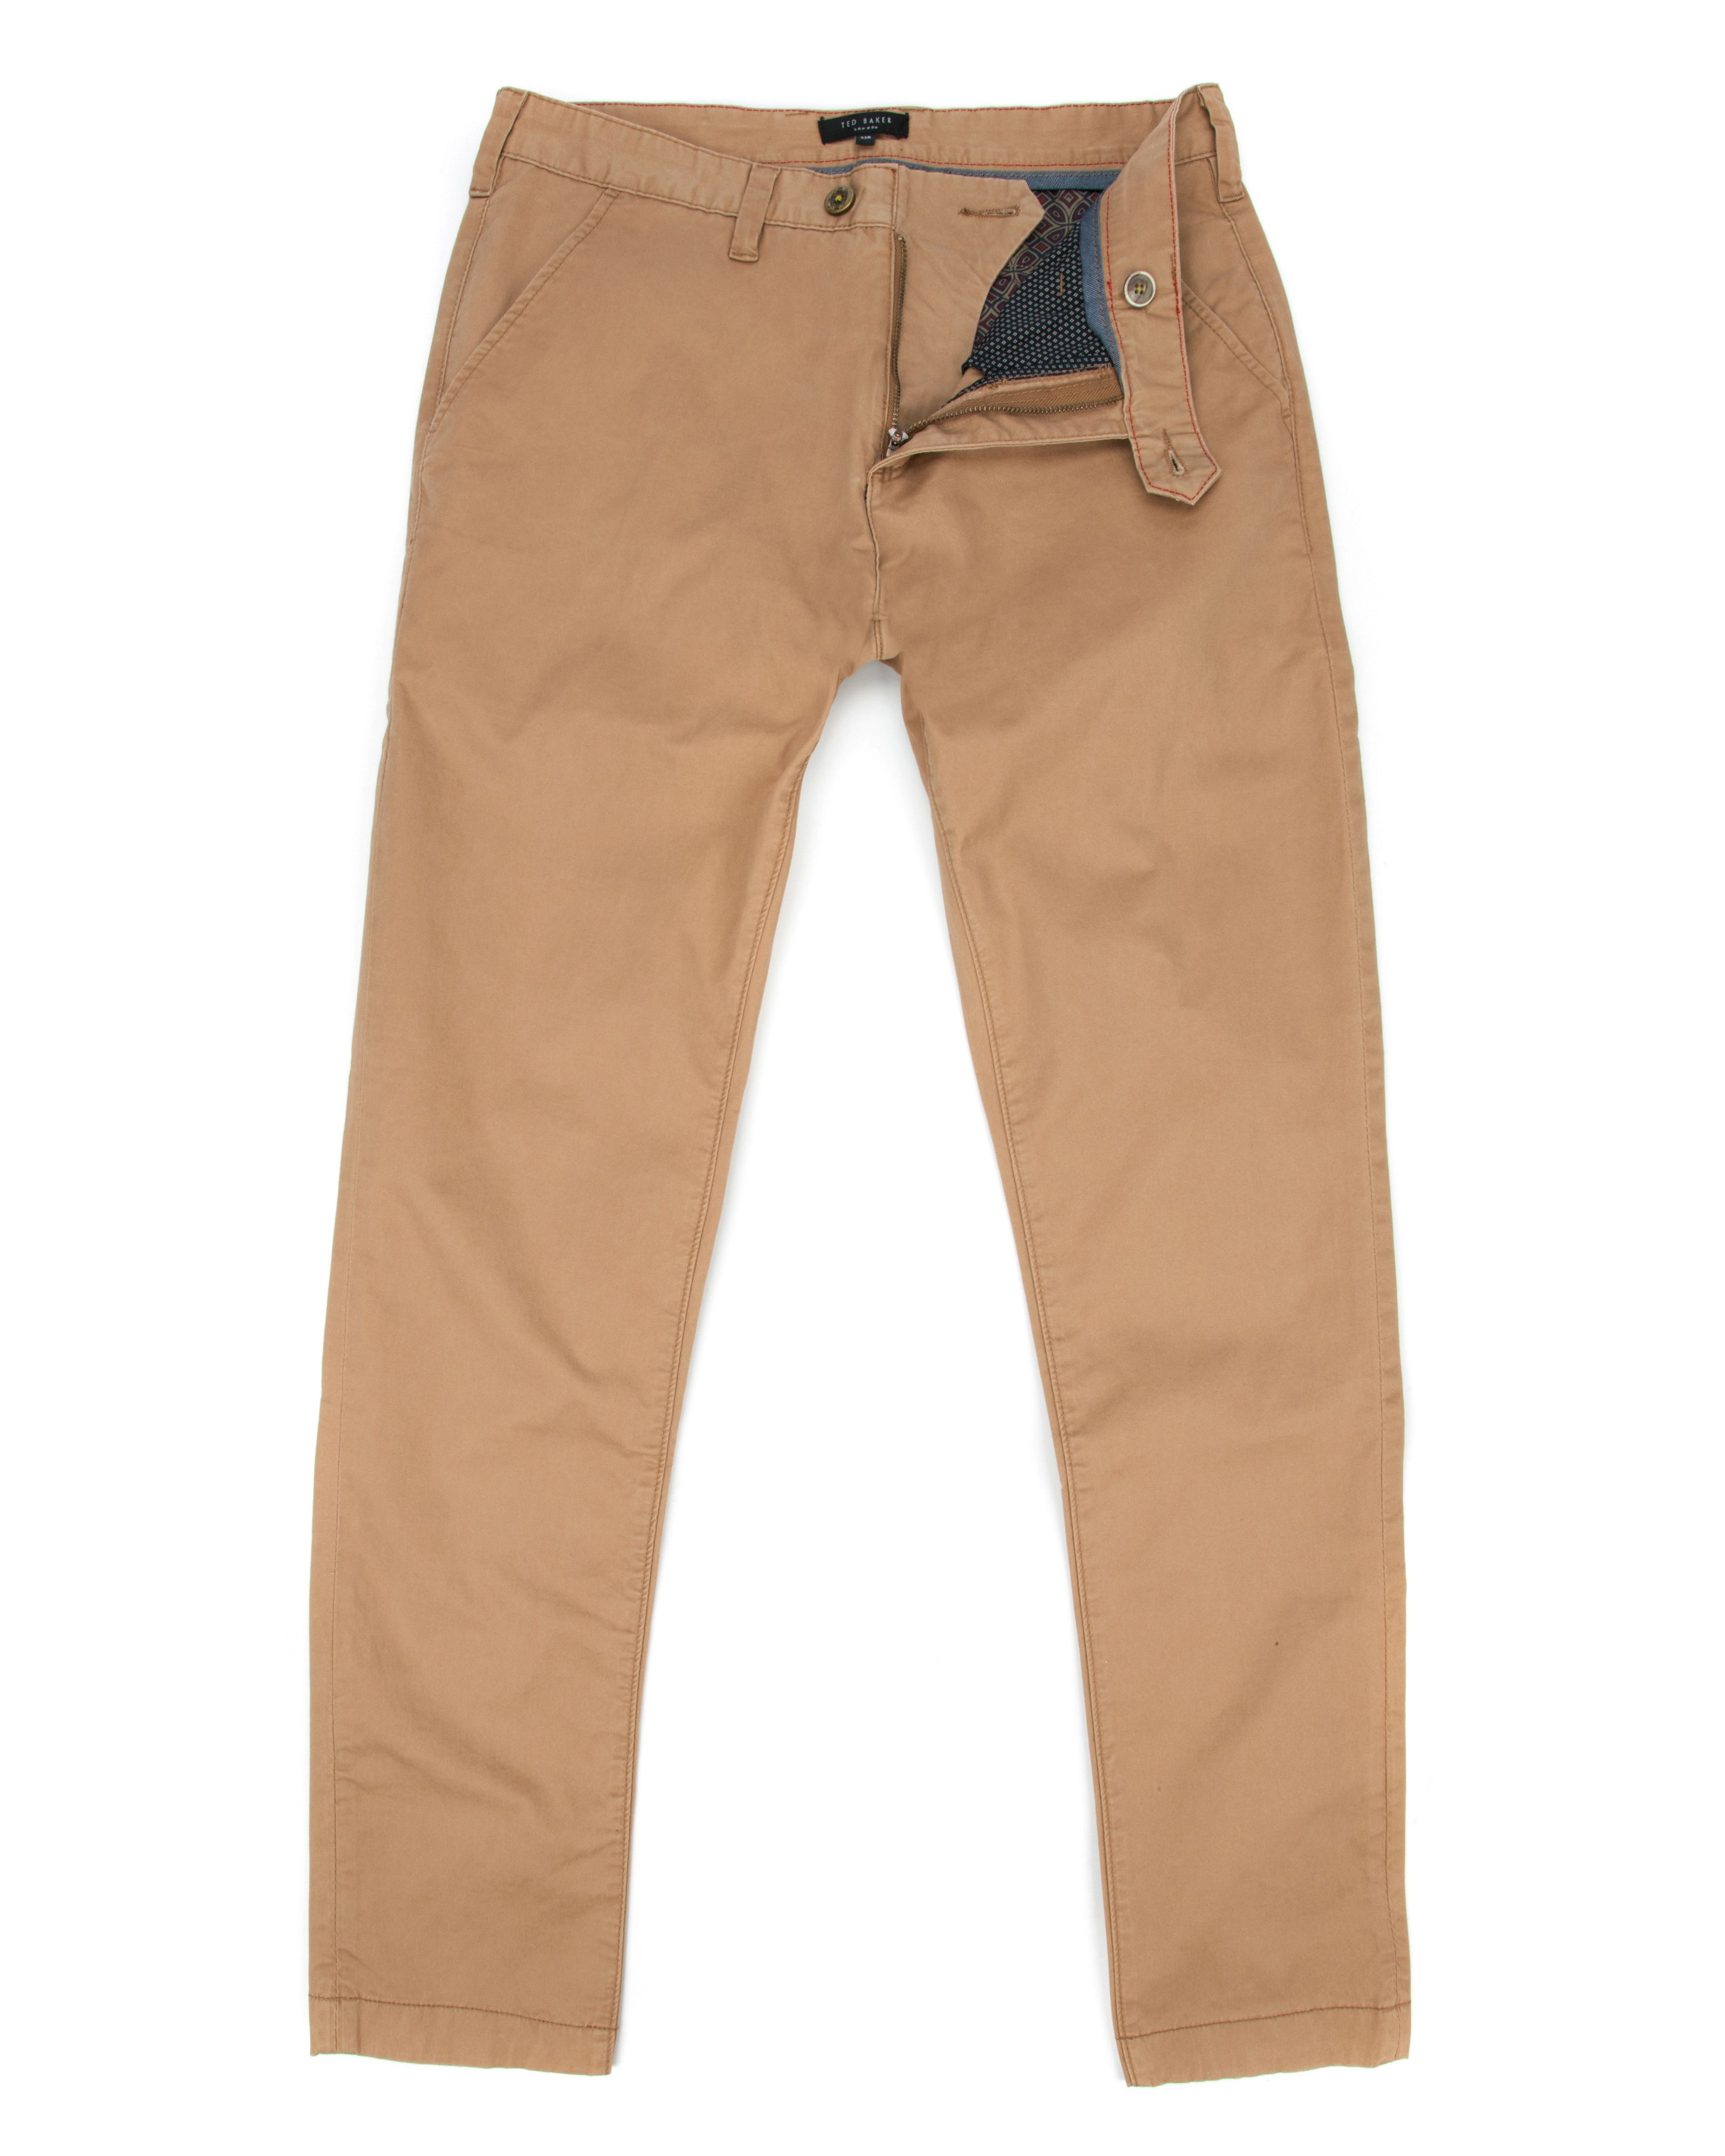 Goblinn regular fit chino